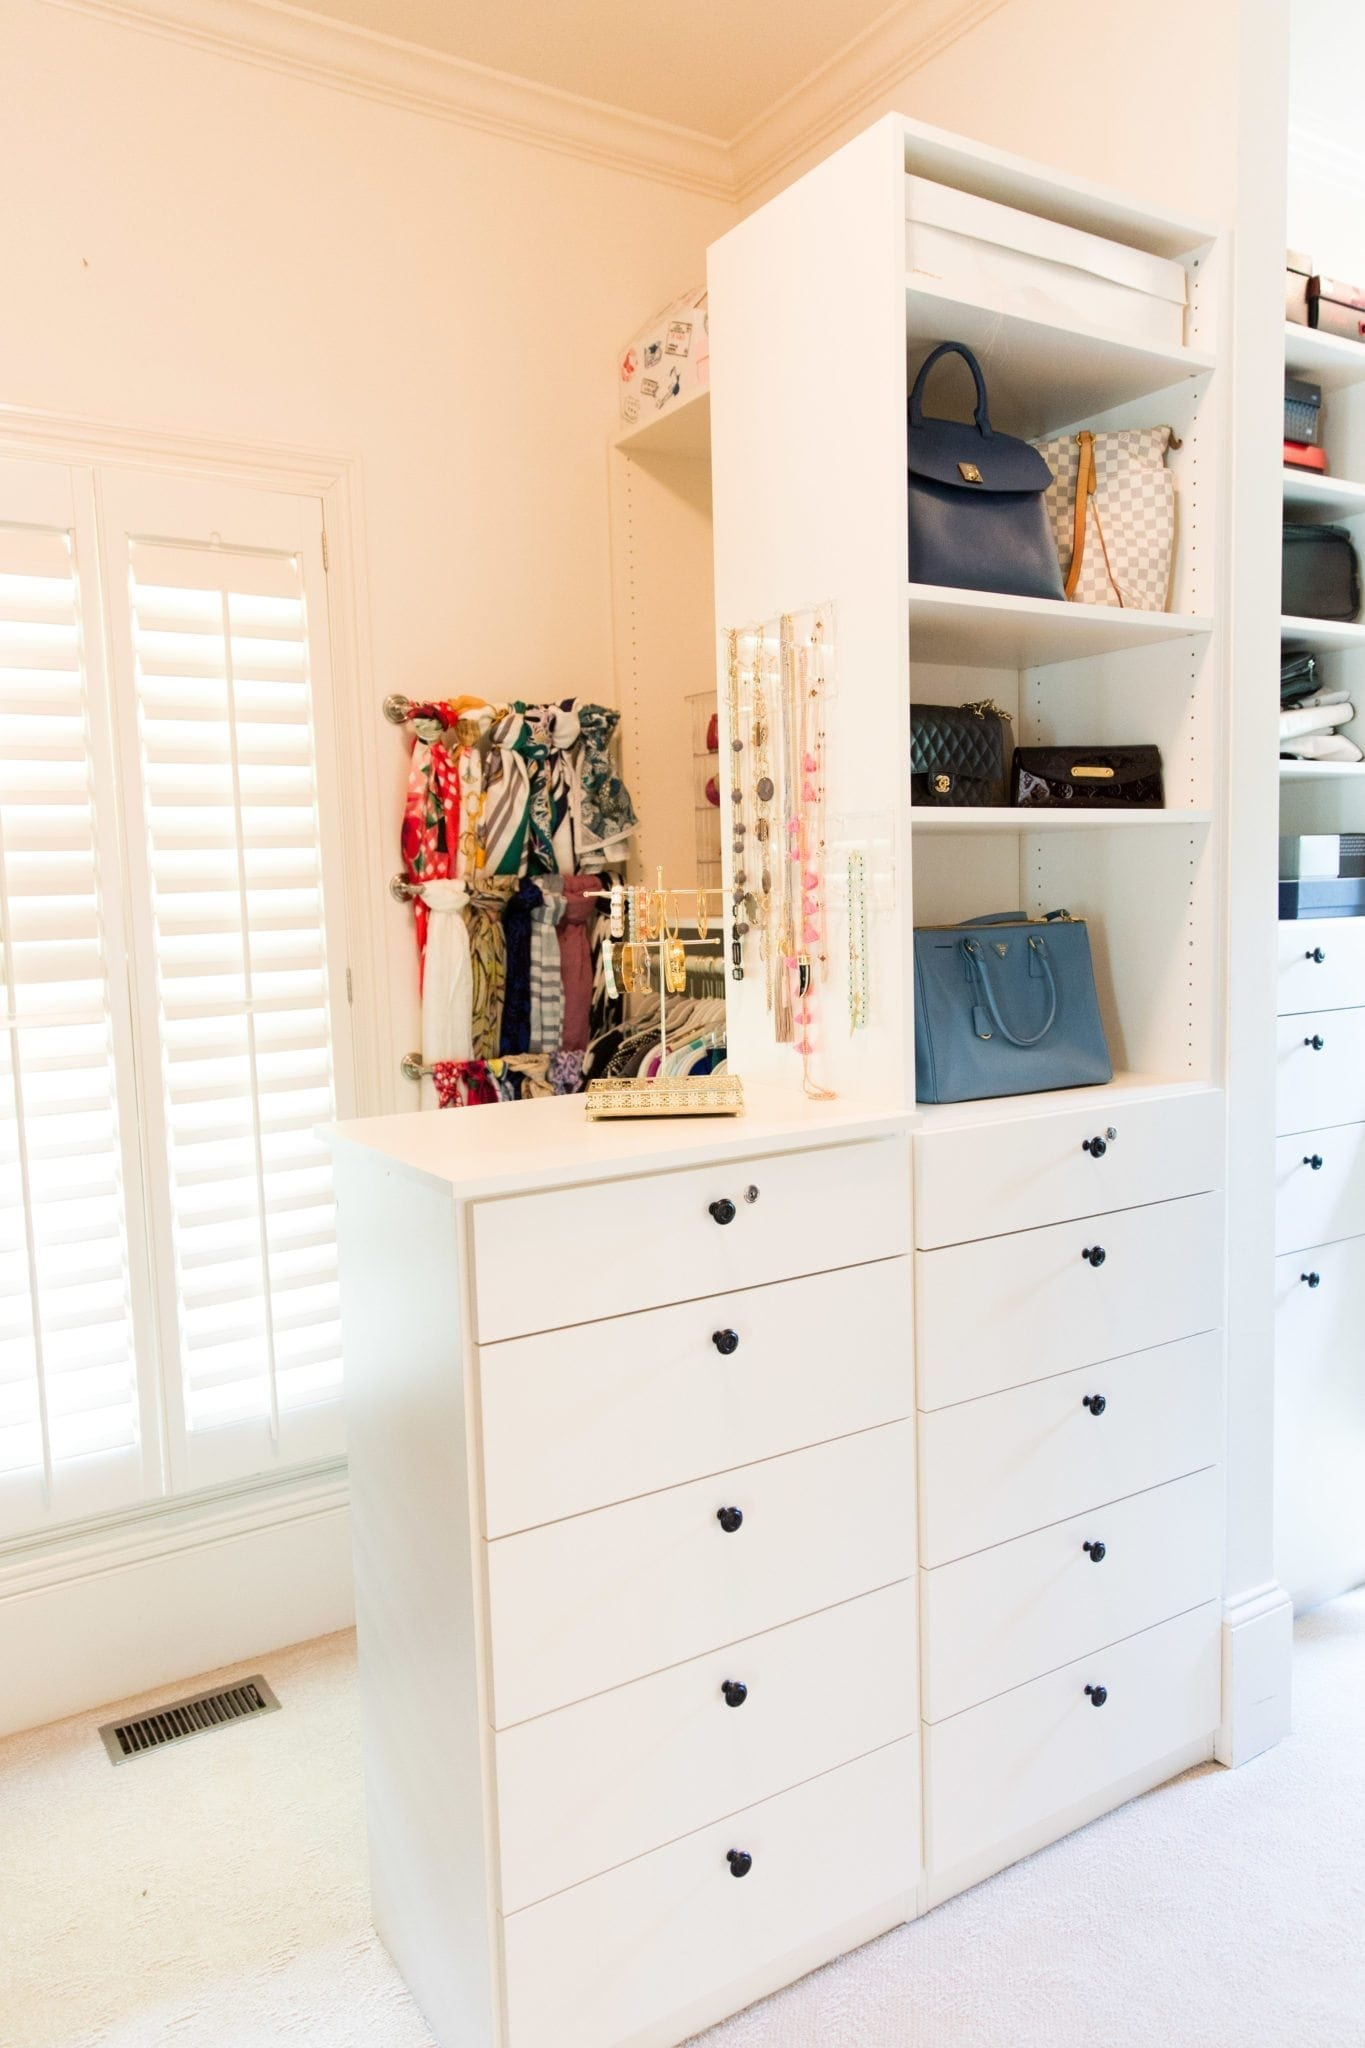 Closet storage ideas and closet organization tips.